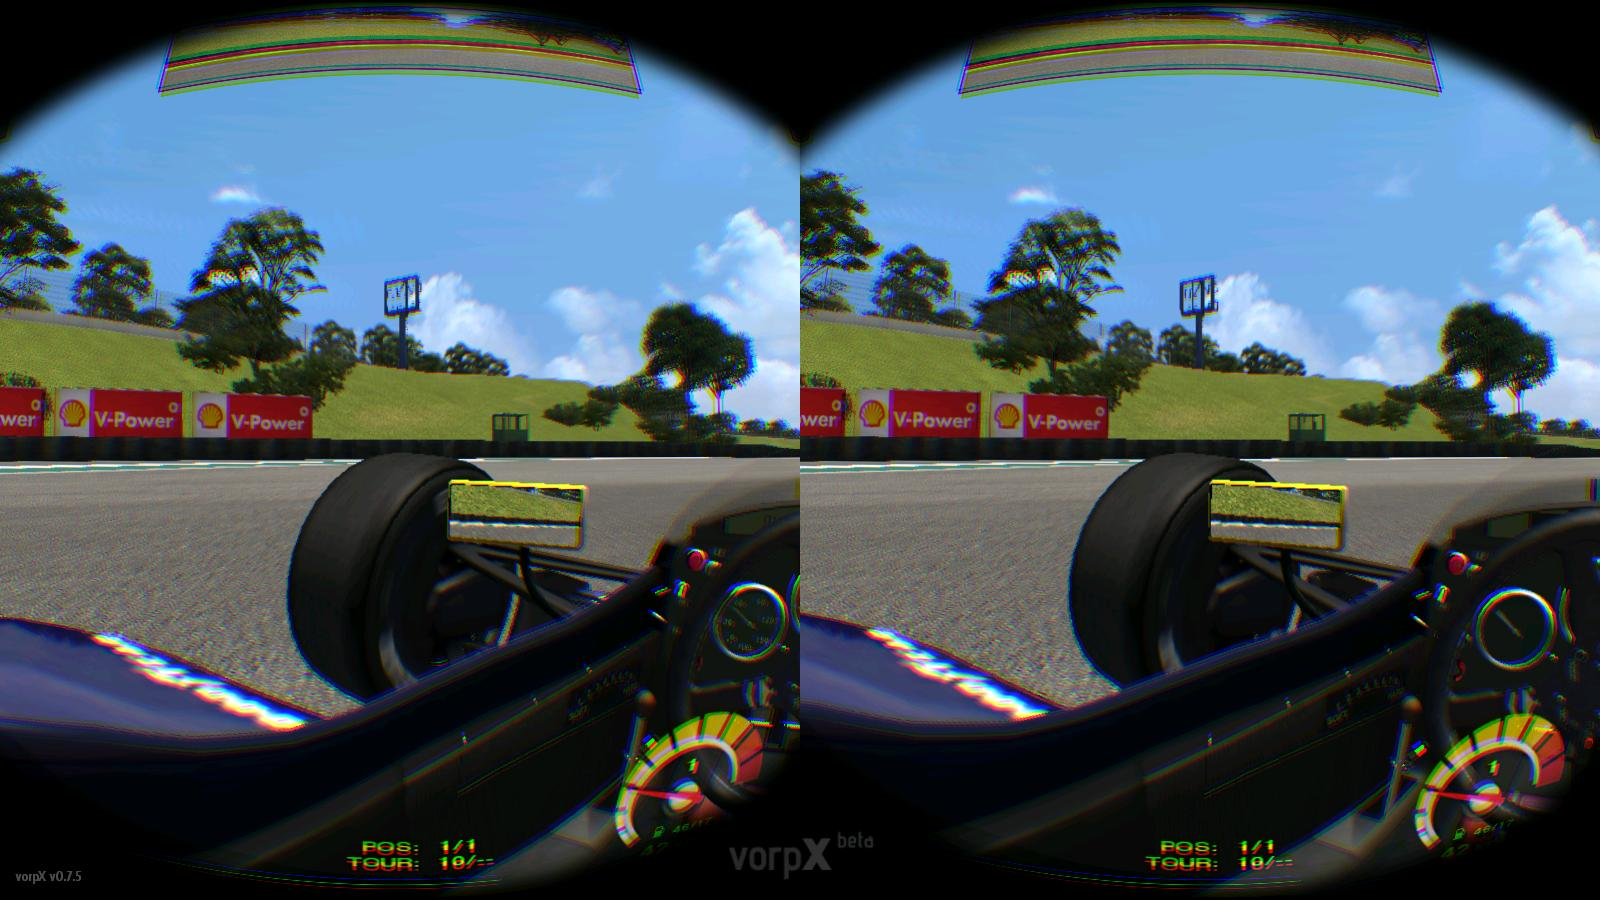 Enable oculus rift in GSC using VorpX | RaceDepartment - Latest